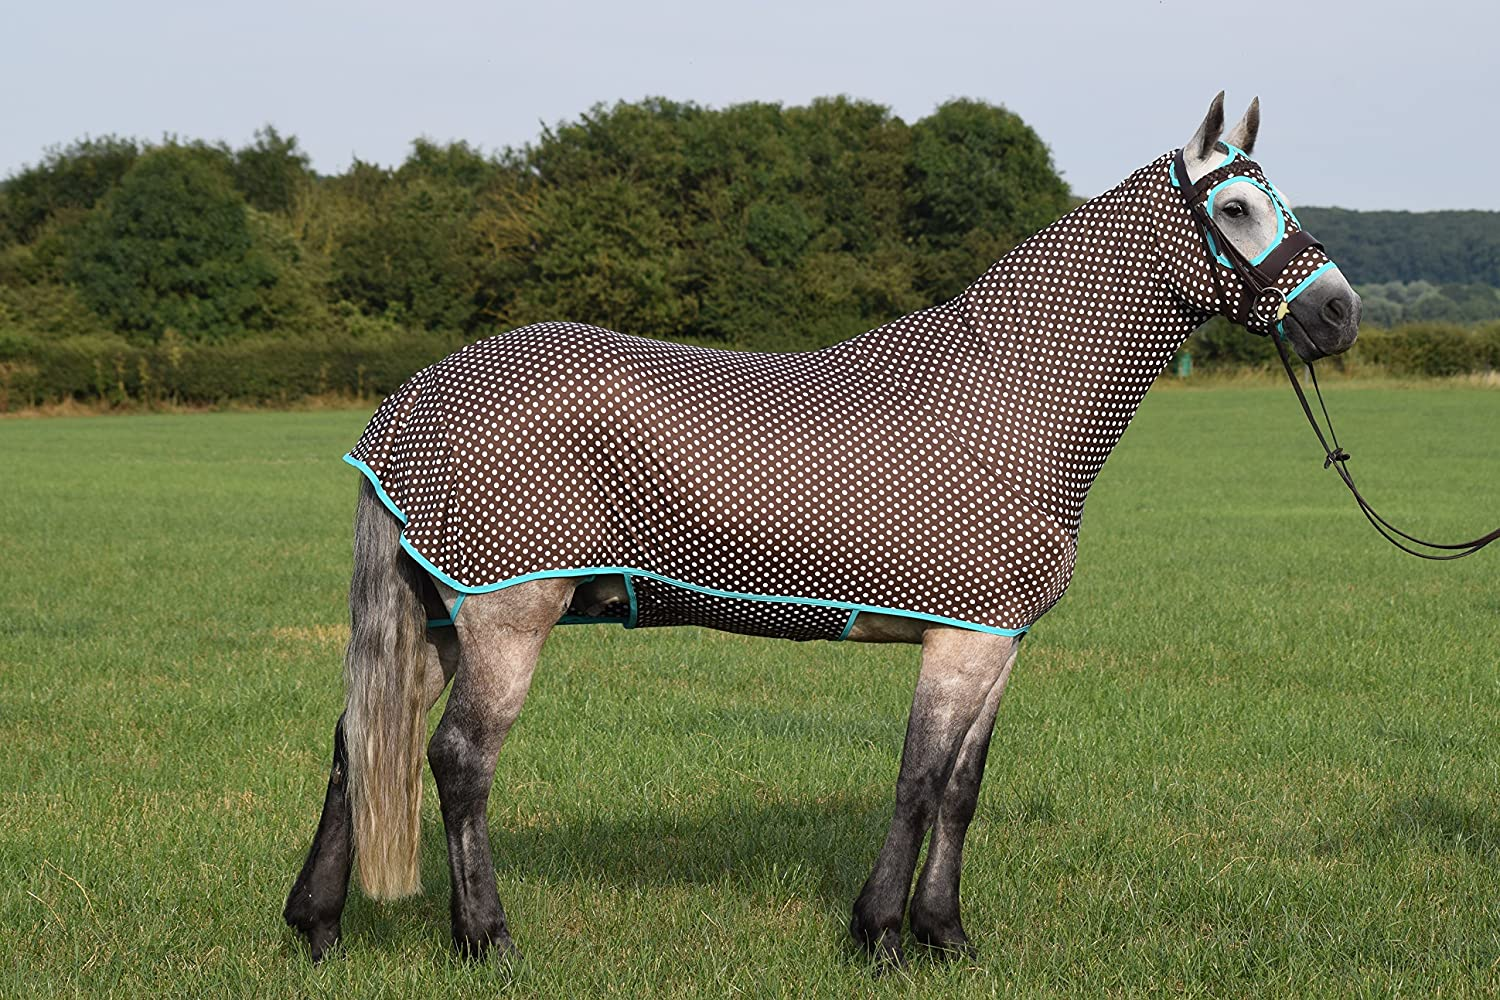 Nylon Lycra Full Horse Body Cover for Showing, Dressage and Eventing Horses  The Honsie  Brown Polka Dot Print